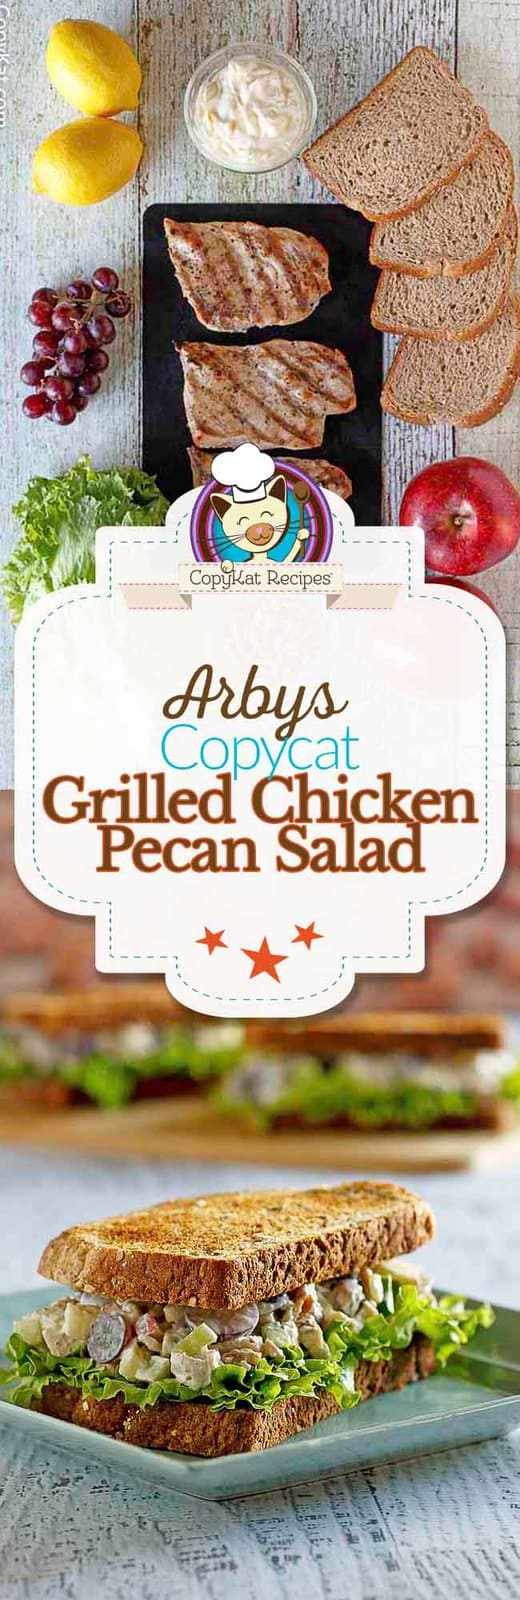 You Can Recreate The Arby S Grilled Chicken Pecan Salad From Scratch With This Easy Copycat Recipe